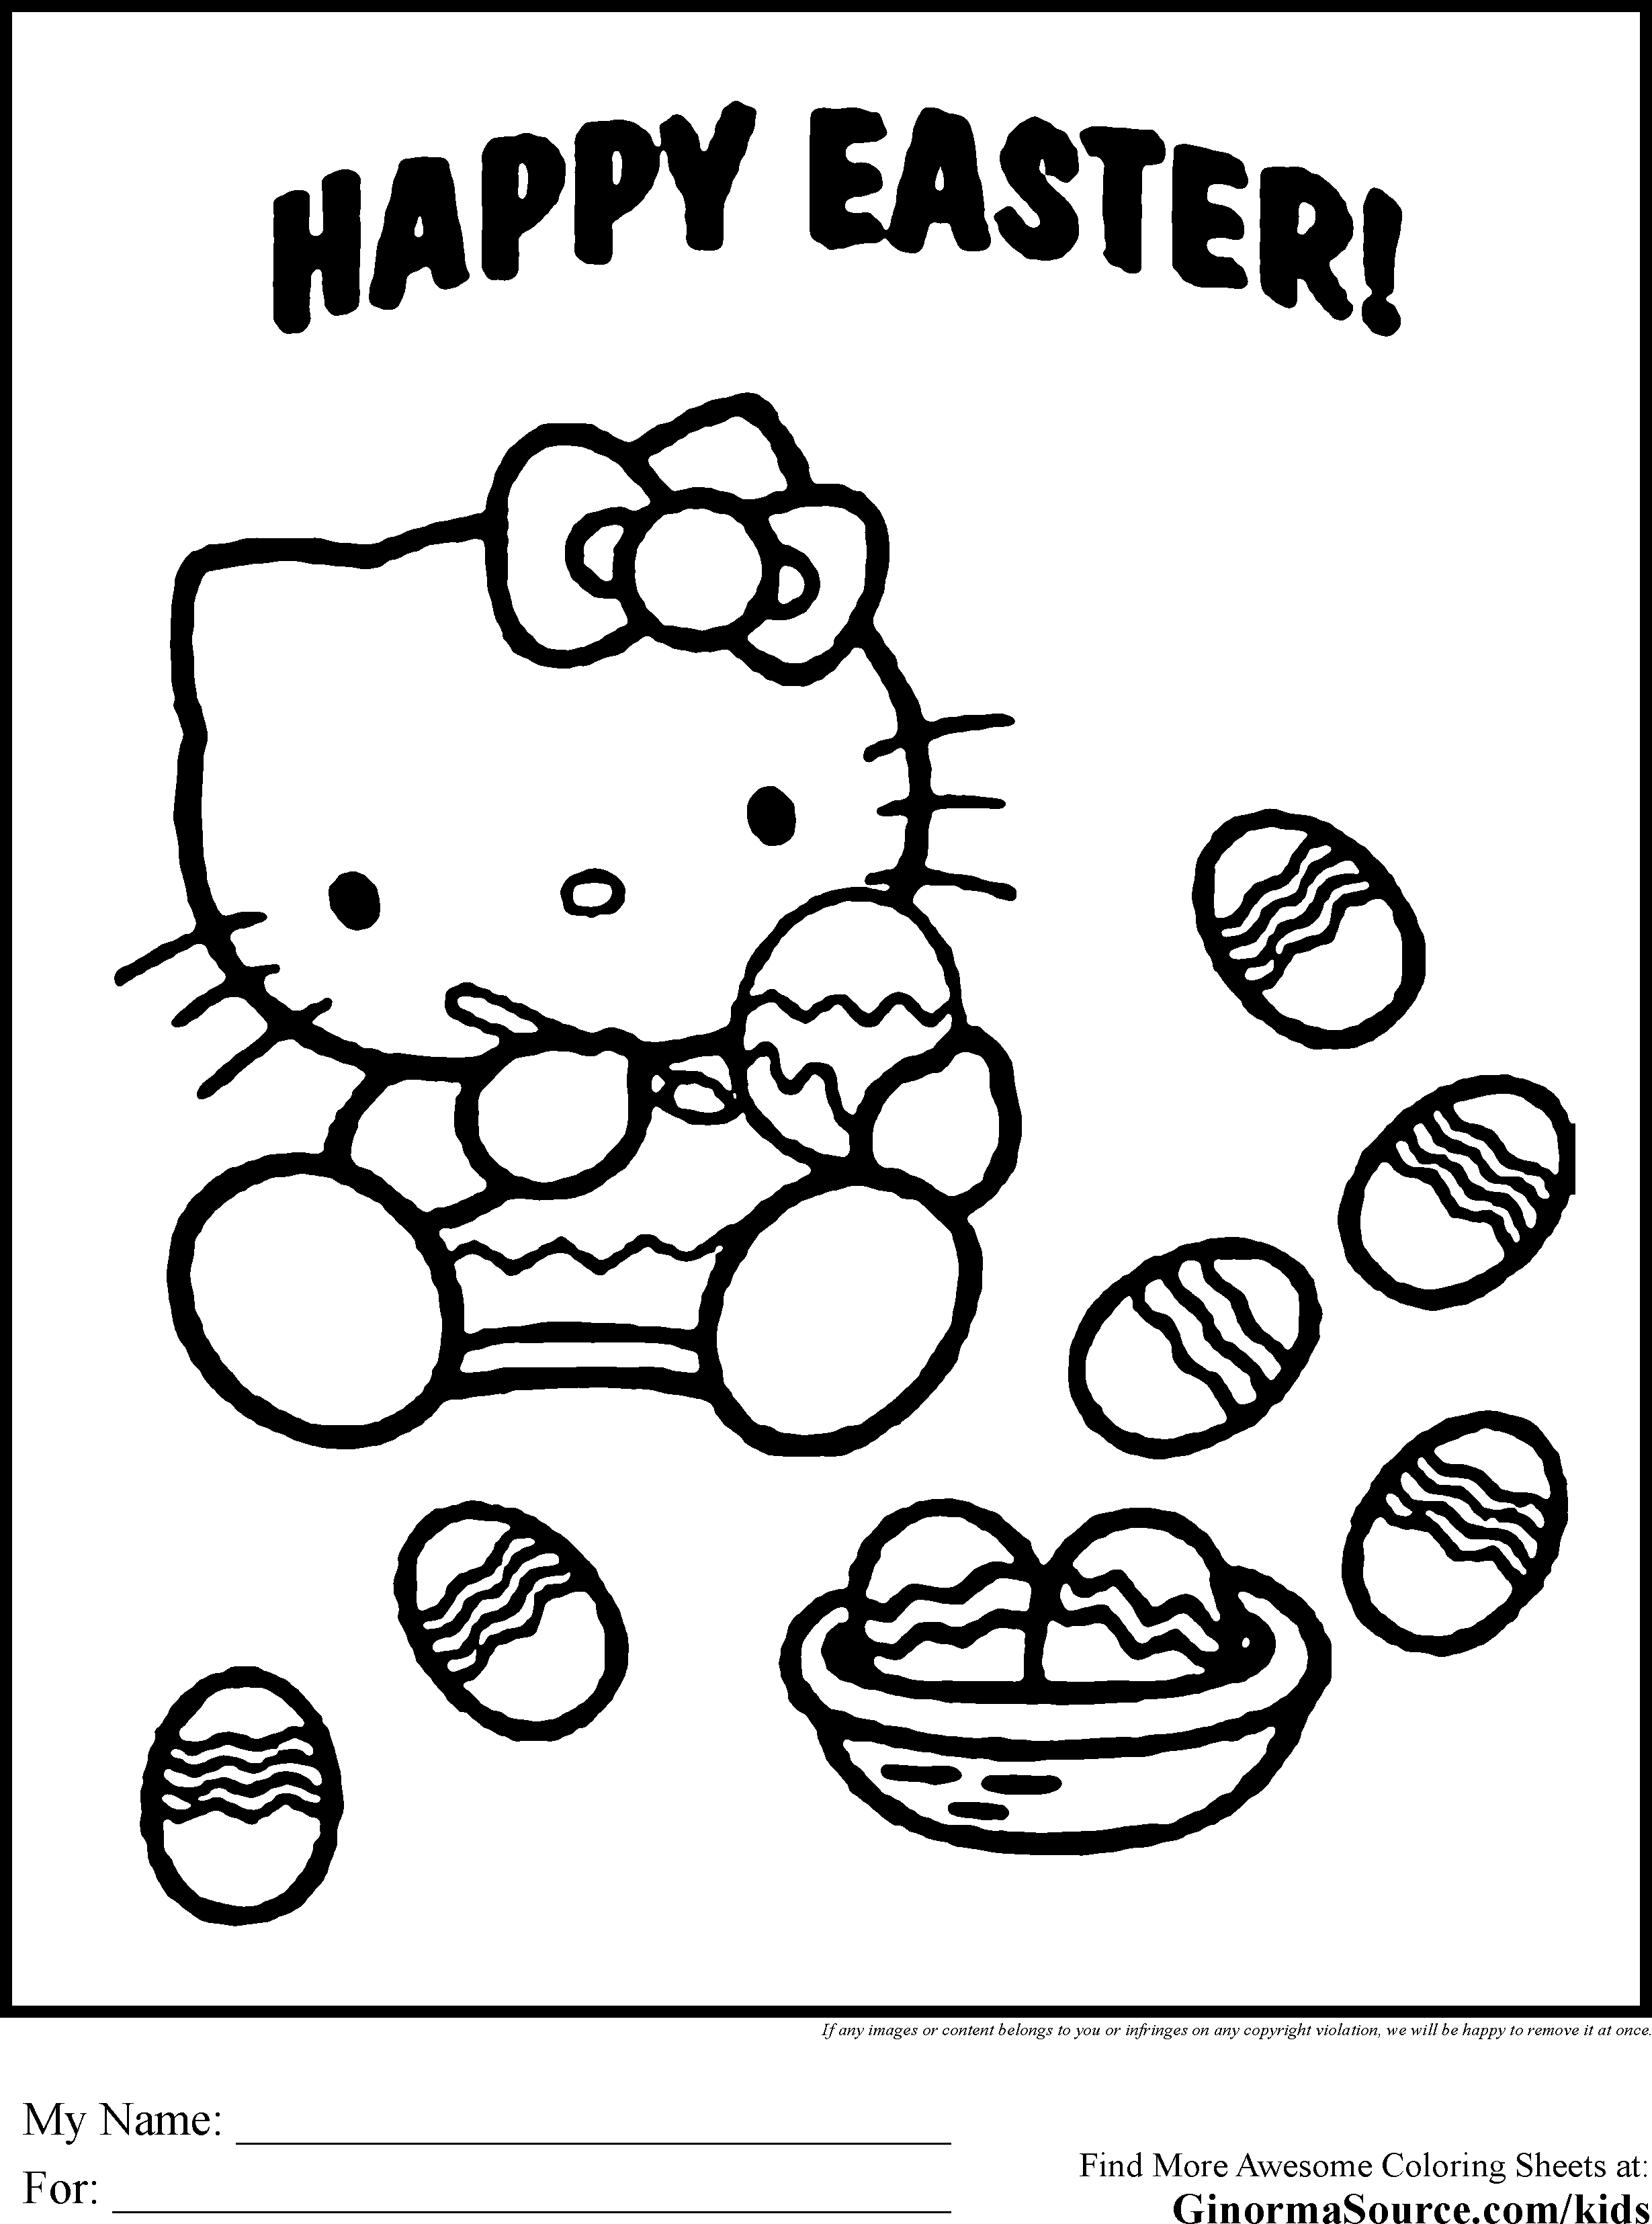 Free printable coloring pages kitty - Free Printable Coloring Pages Kitty